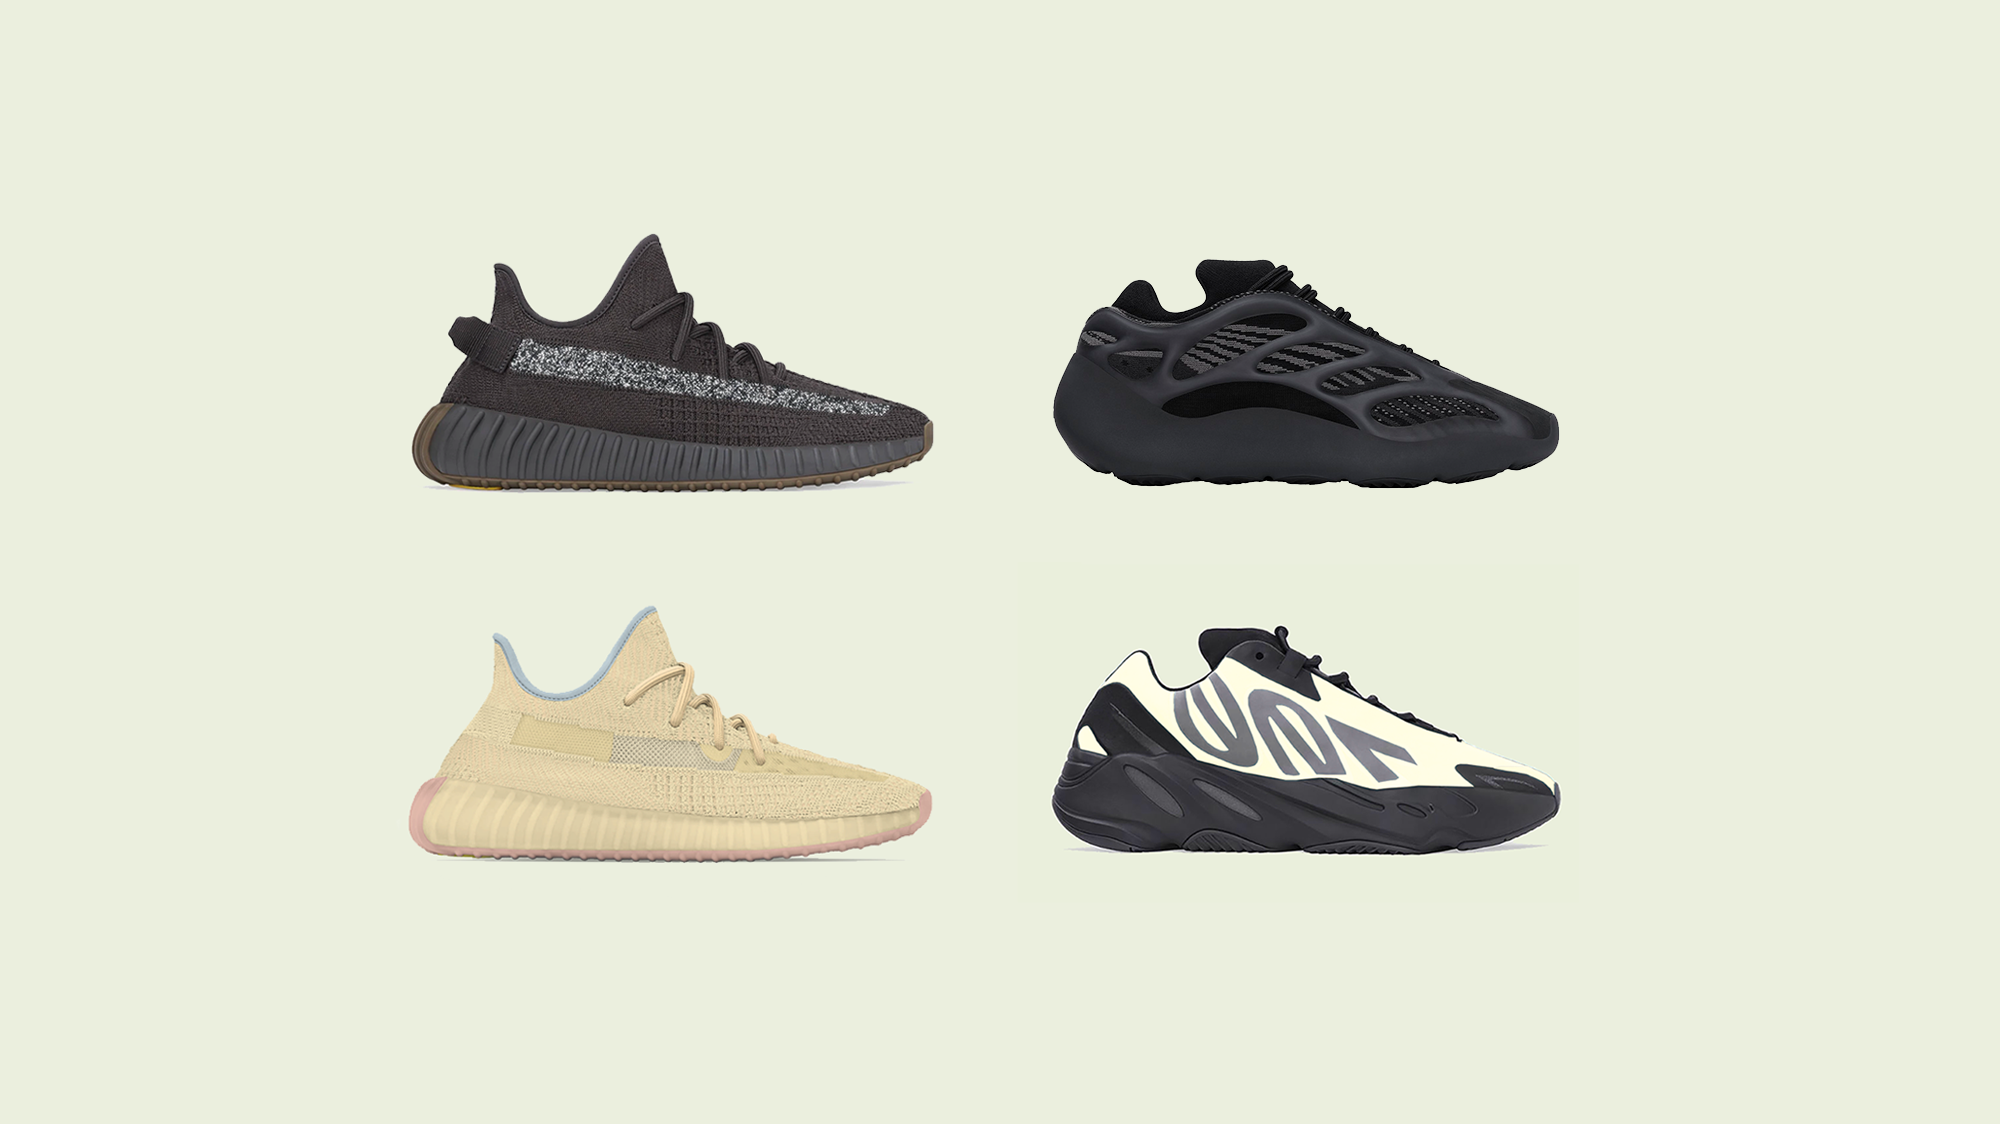 YEEZY April 2020 Line Up & Releases Dates